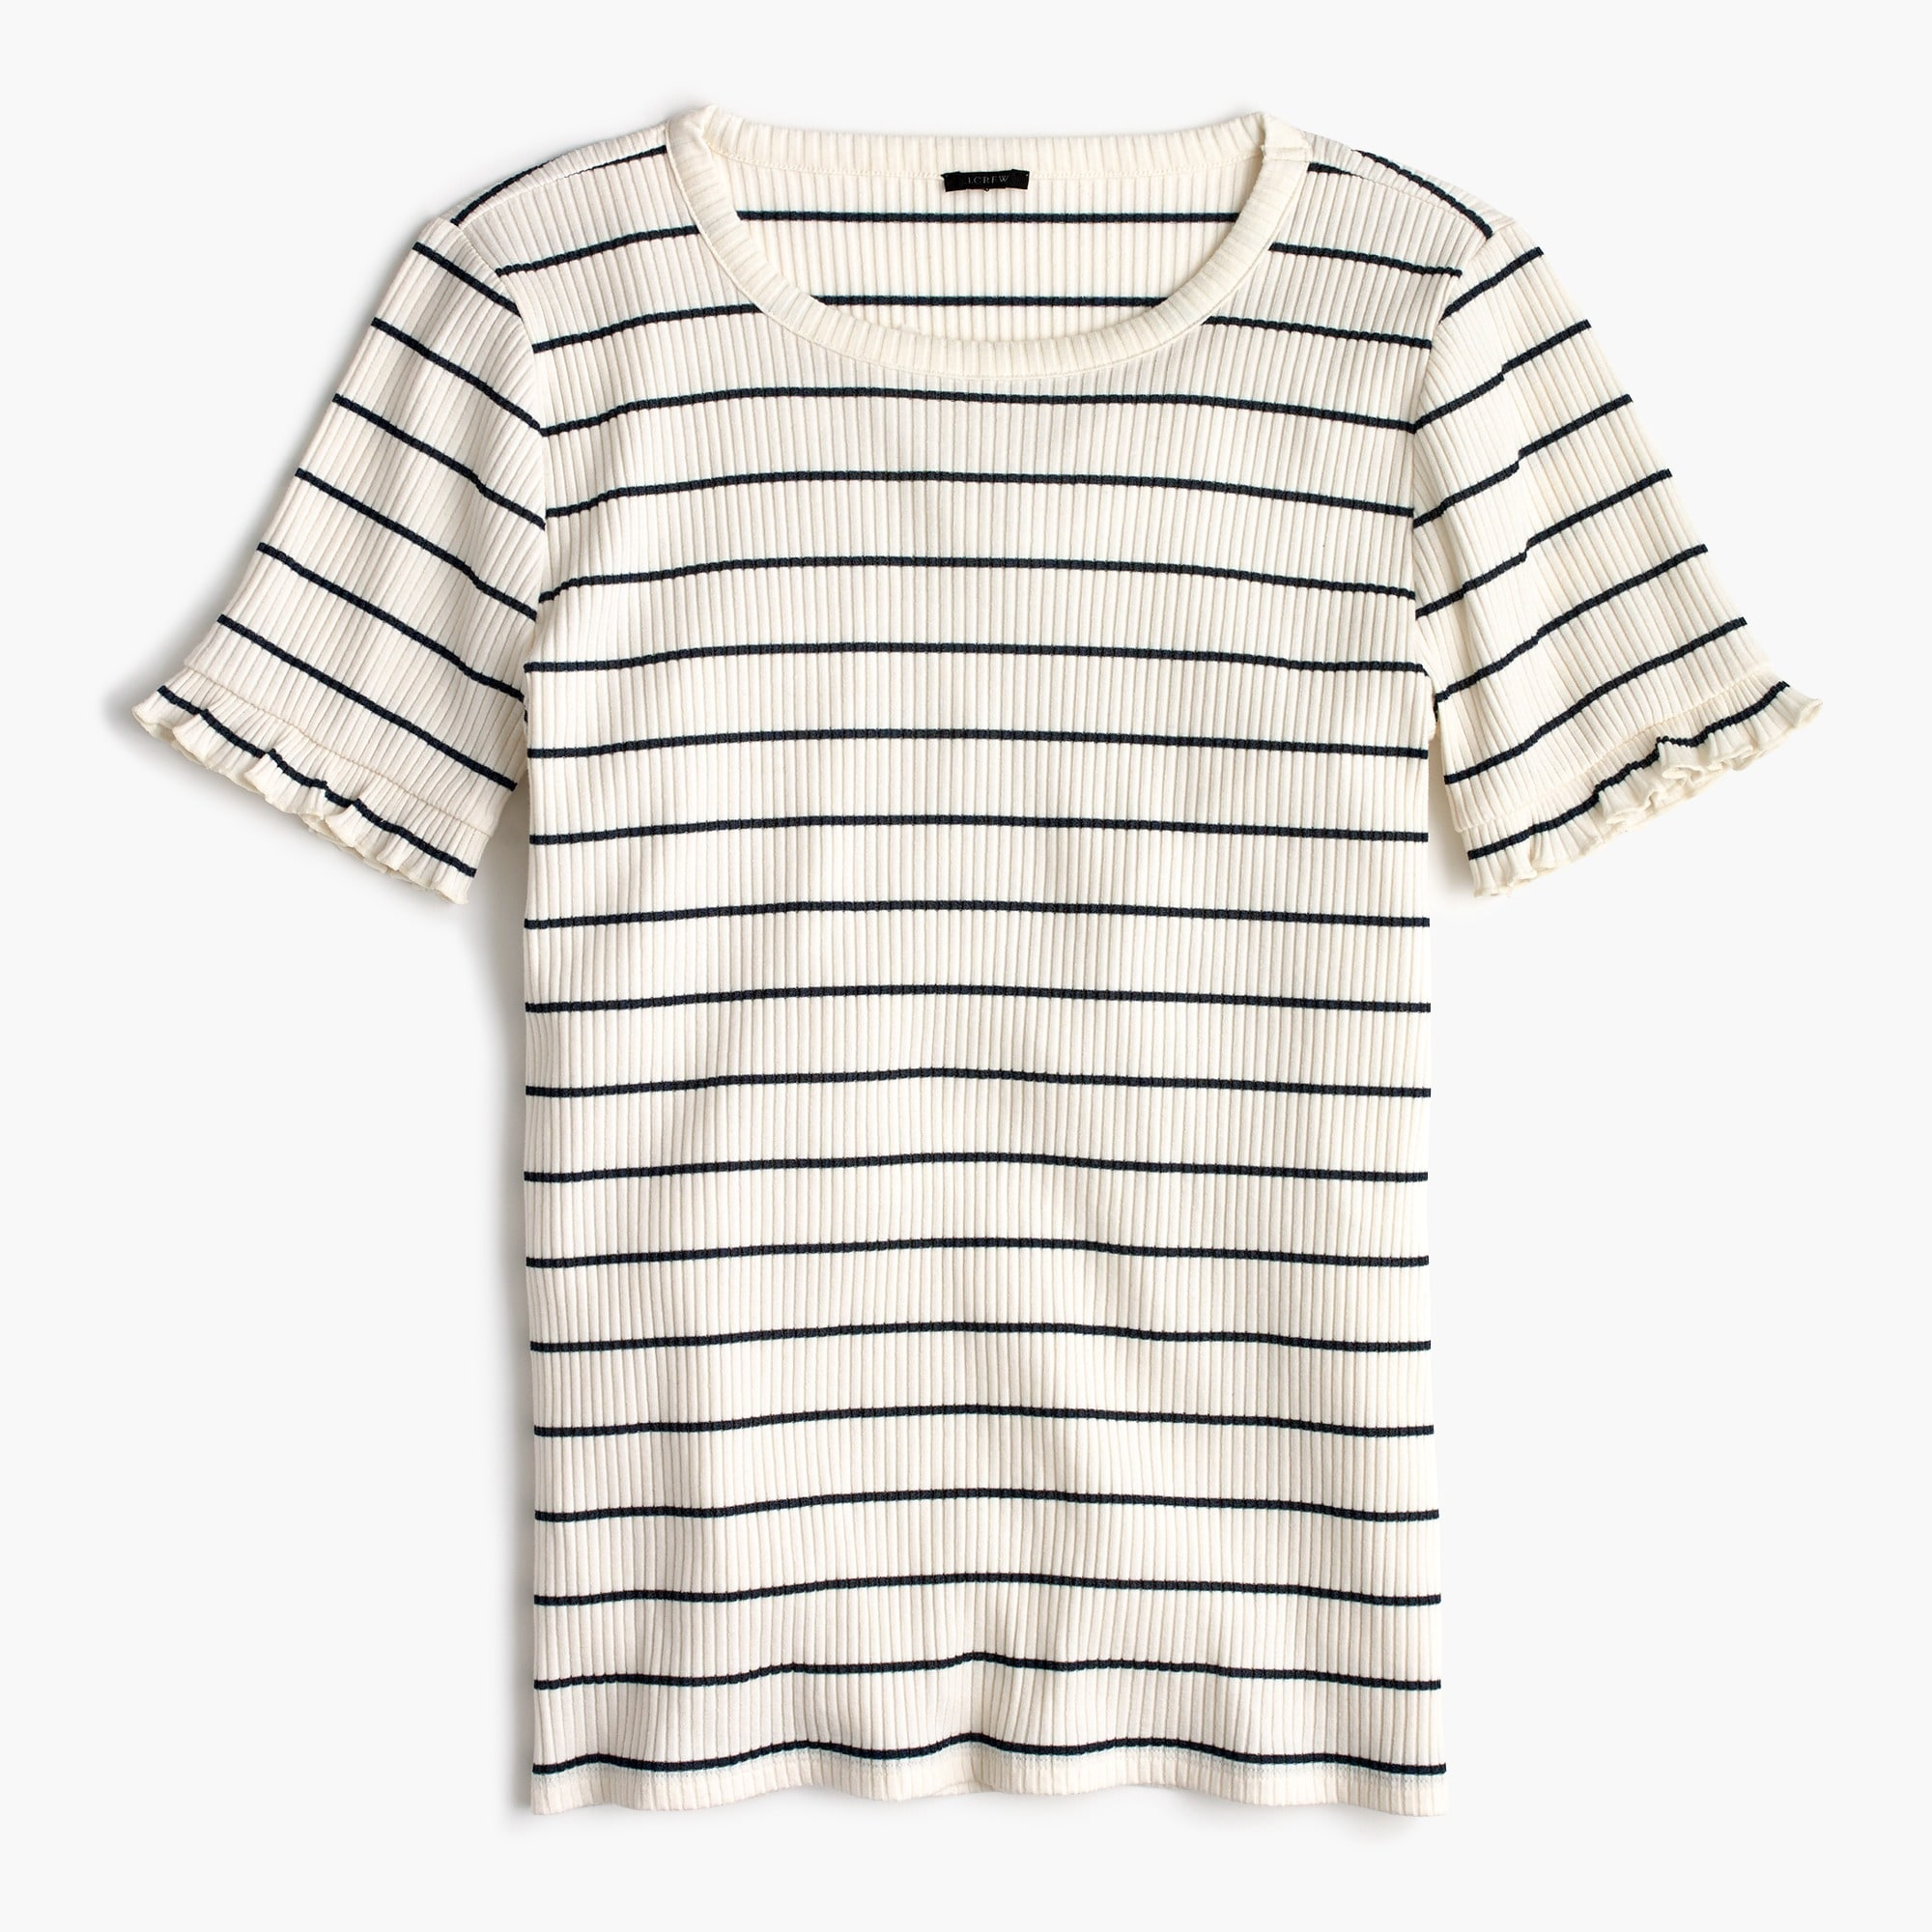 Ribbed striped T-shirt with ruffled sleeves